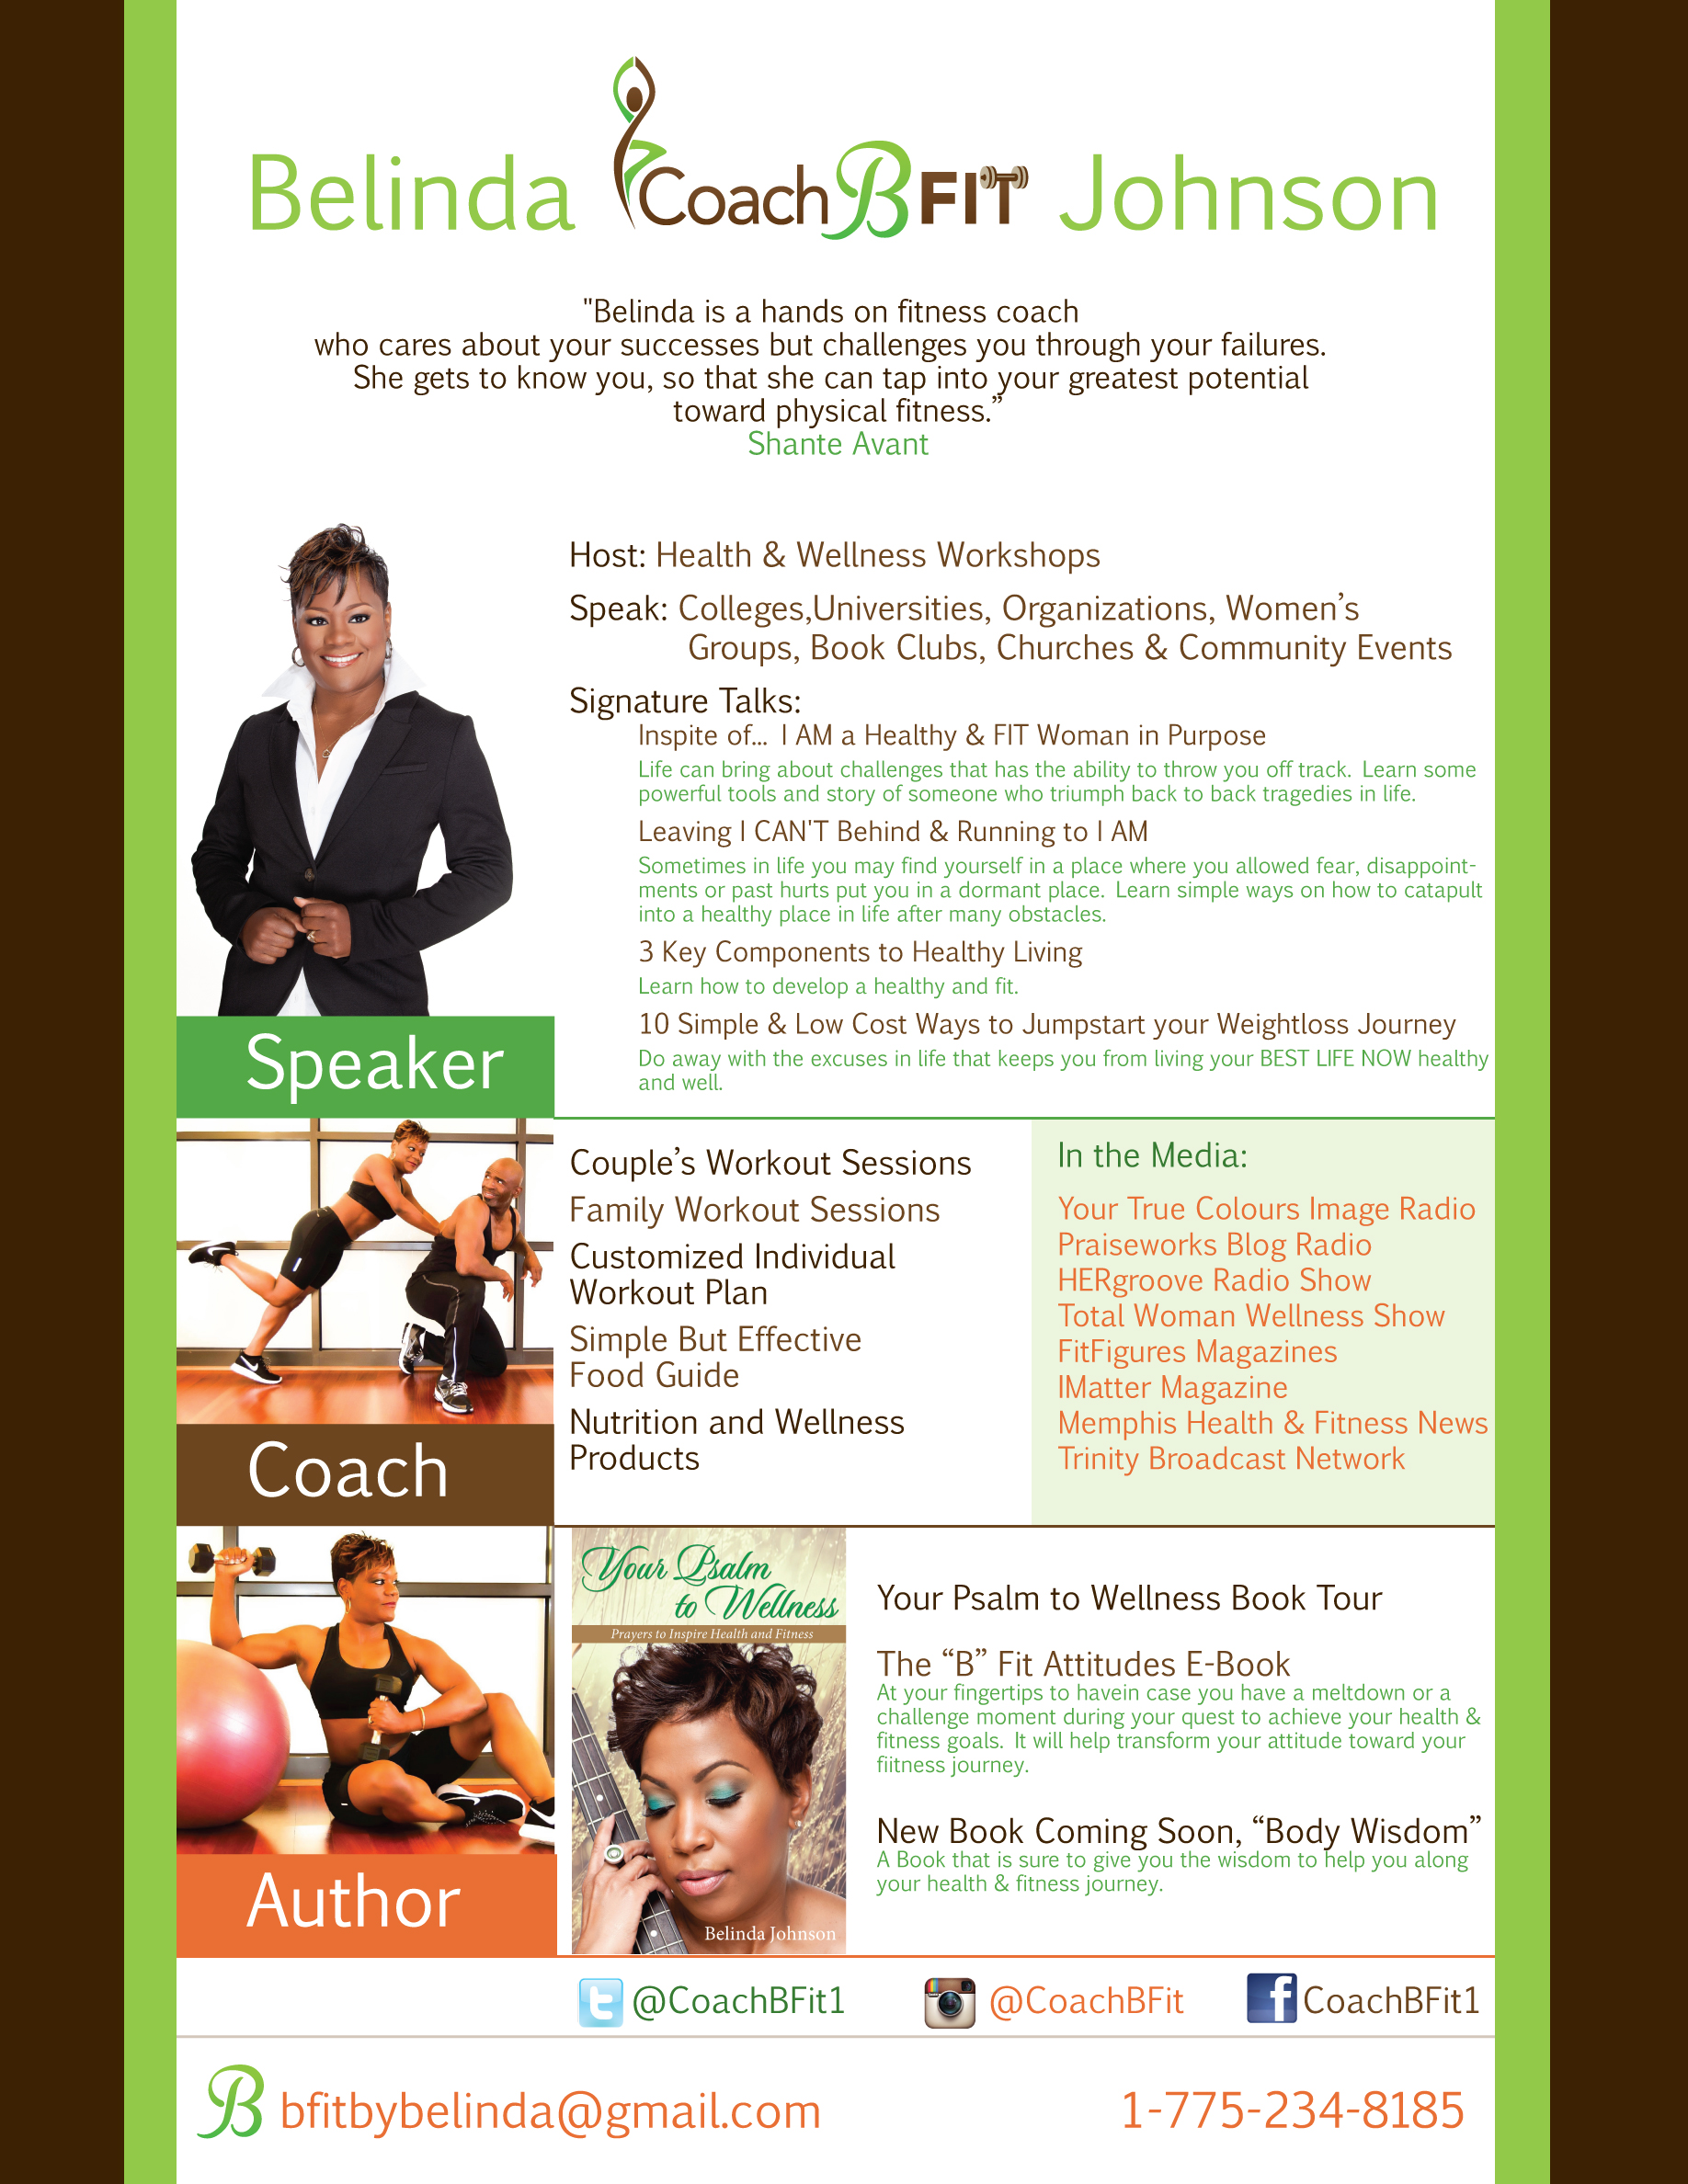 Belinda BFit Johnson Media Kit